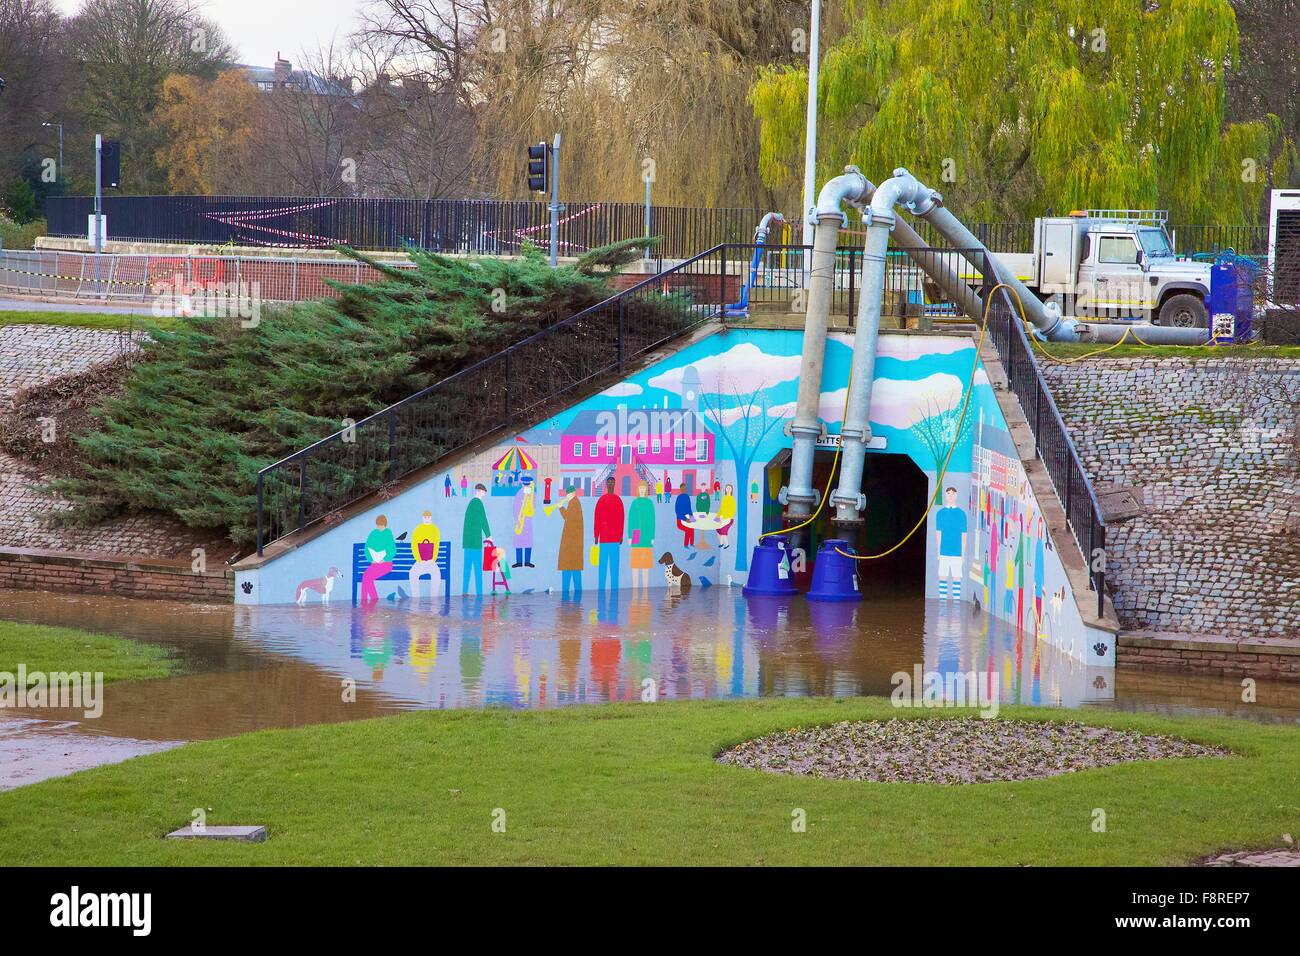 Carlisle Floods. December 2015. Pumping flood water out of Hardwick Circus underpass. Storm Desmond caused severe - Stock Image